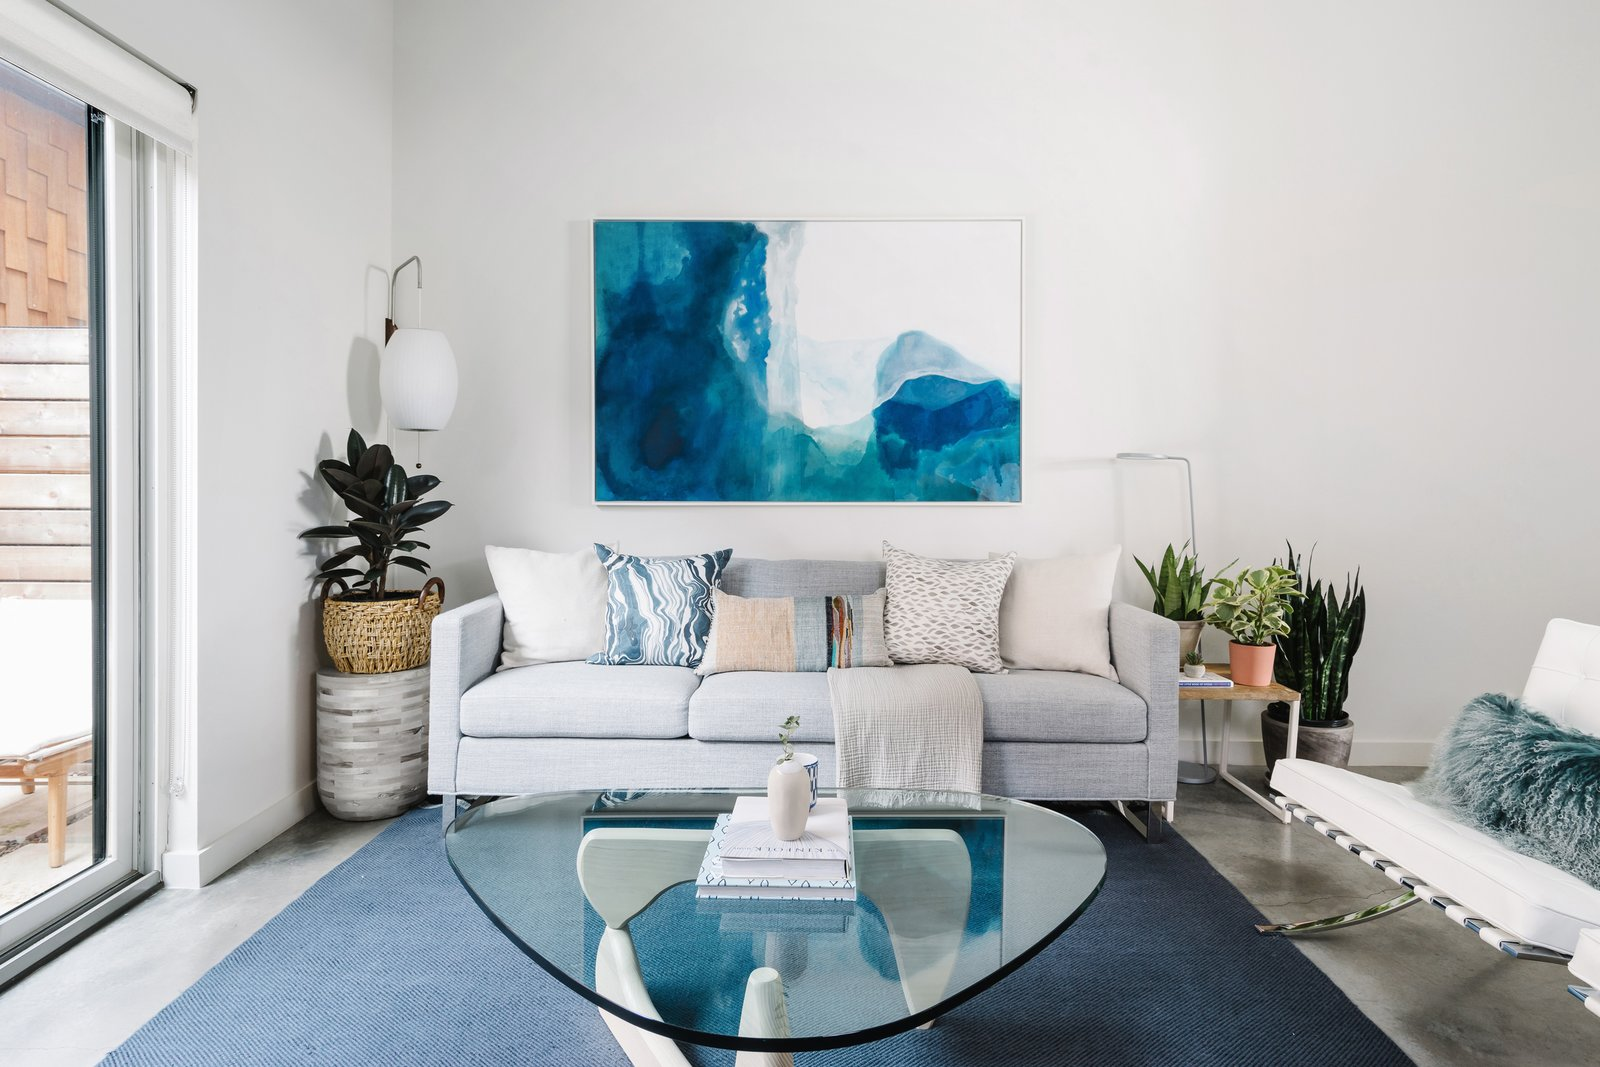 Living Room, Chair, Coffee Tables, End Tables, Sofa, Lamps, Concrete Floor, and Floor Lighting This room was inspired by the owners' love of St. Barts.  Photo 4 of 7 in St. Barts-Inspired Accents Create Modern Tranquility in an Austin Tilley Row Home